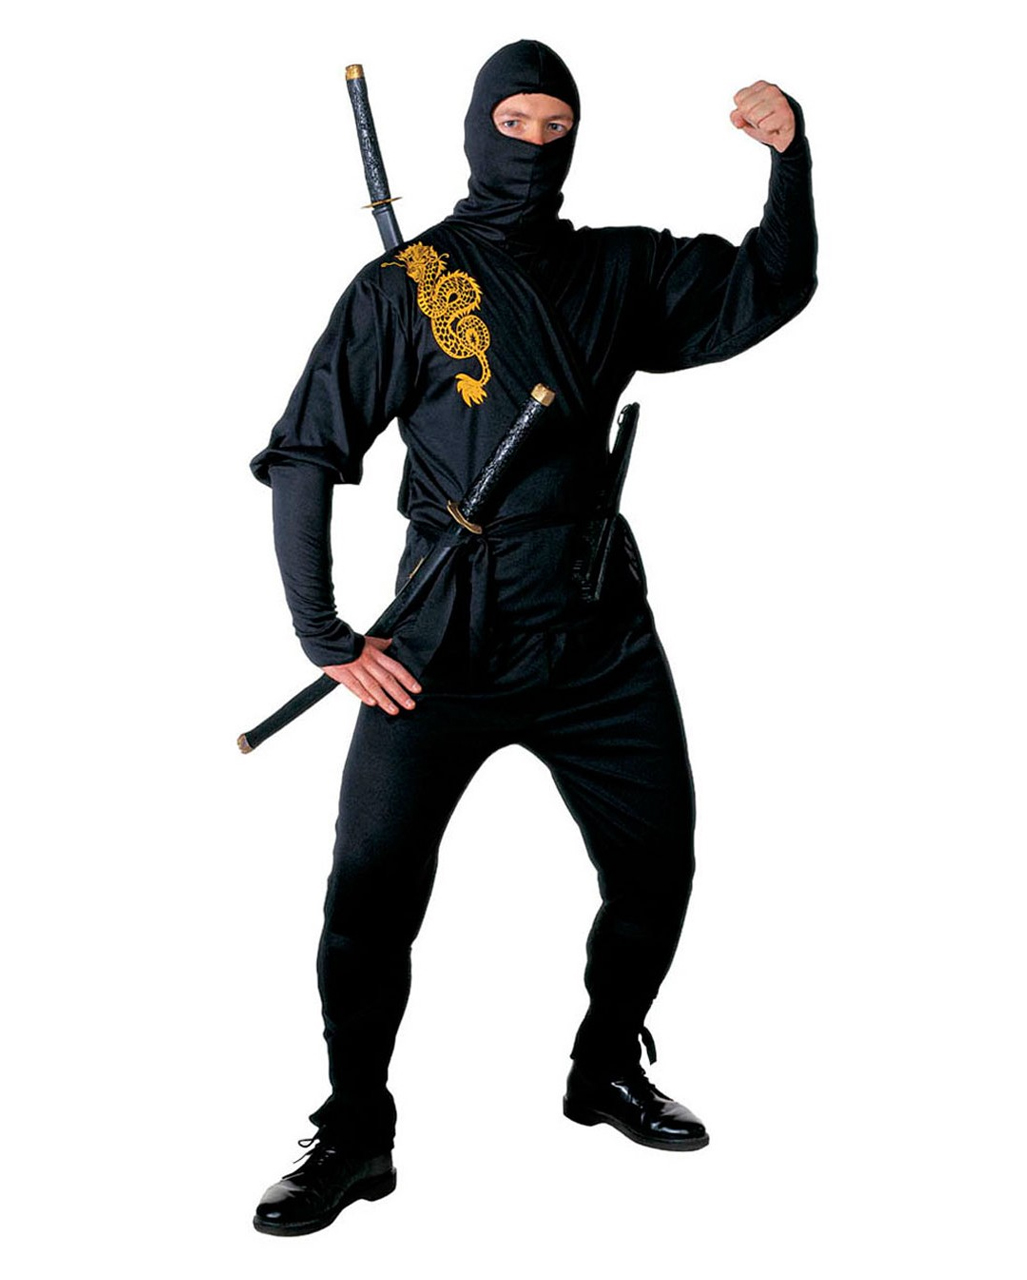 Black Ninja Costume Golden Dragon Gr. L | Ninja Costume | horror-shop.com  sc 1 st  Horror-Shop.com & Black Ninja Costume Golden Dragon Gr. L | Ninja Costume | horror ...